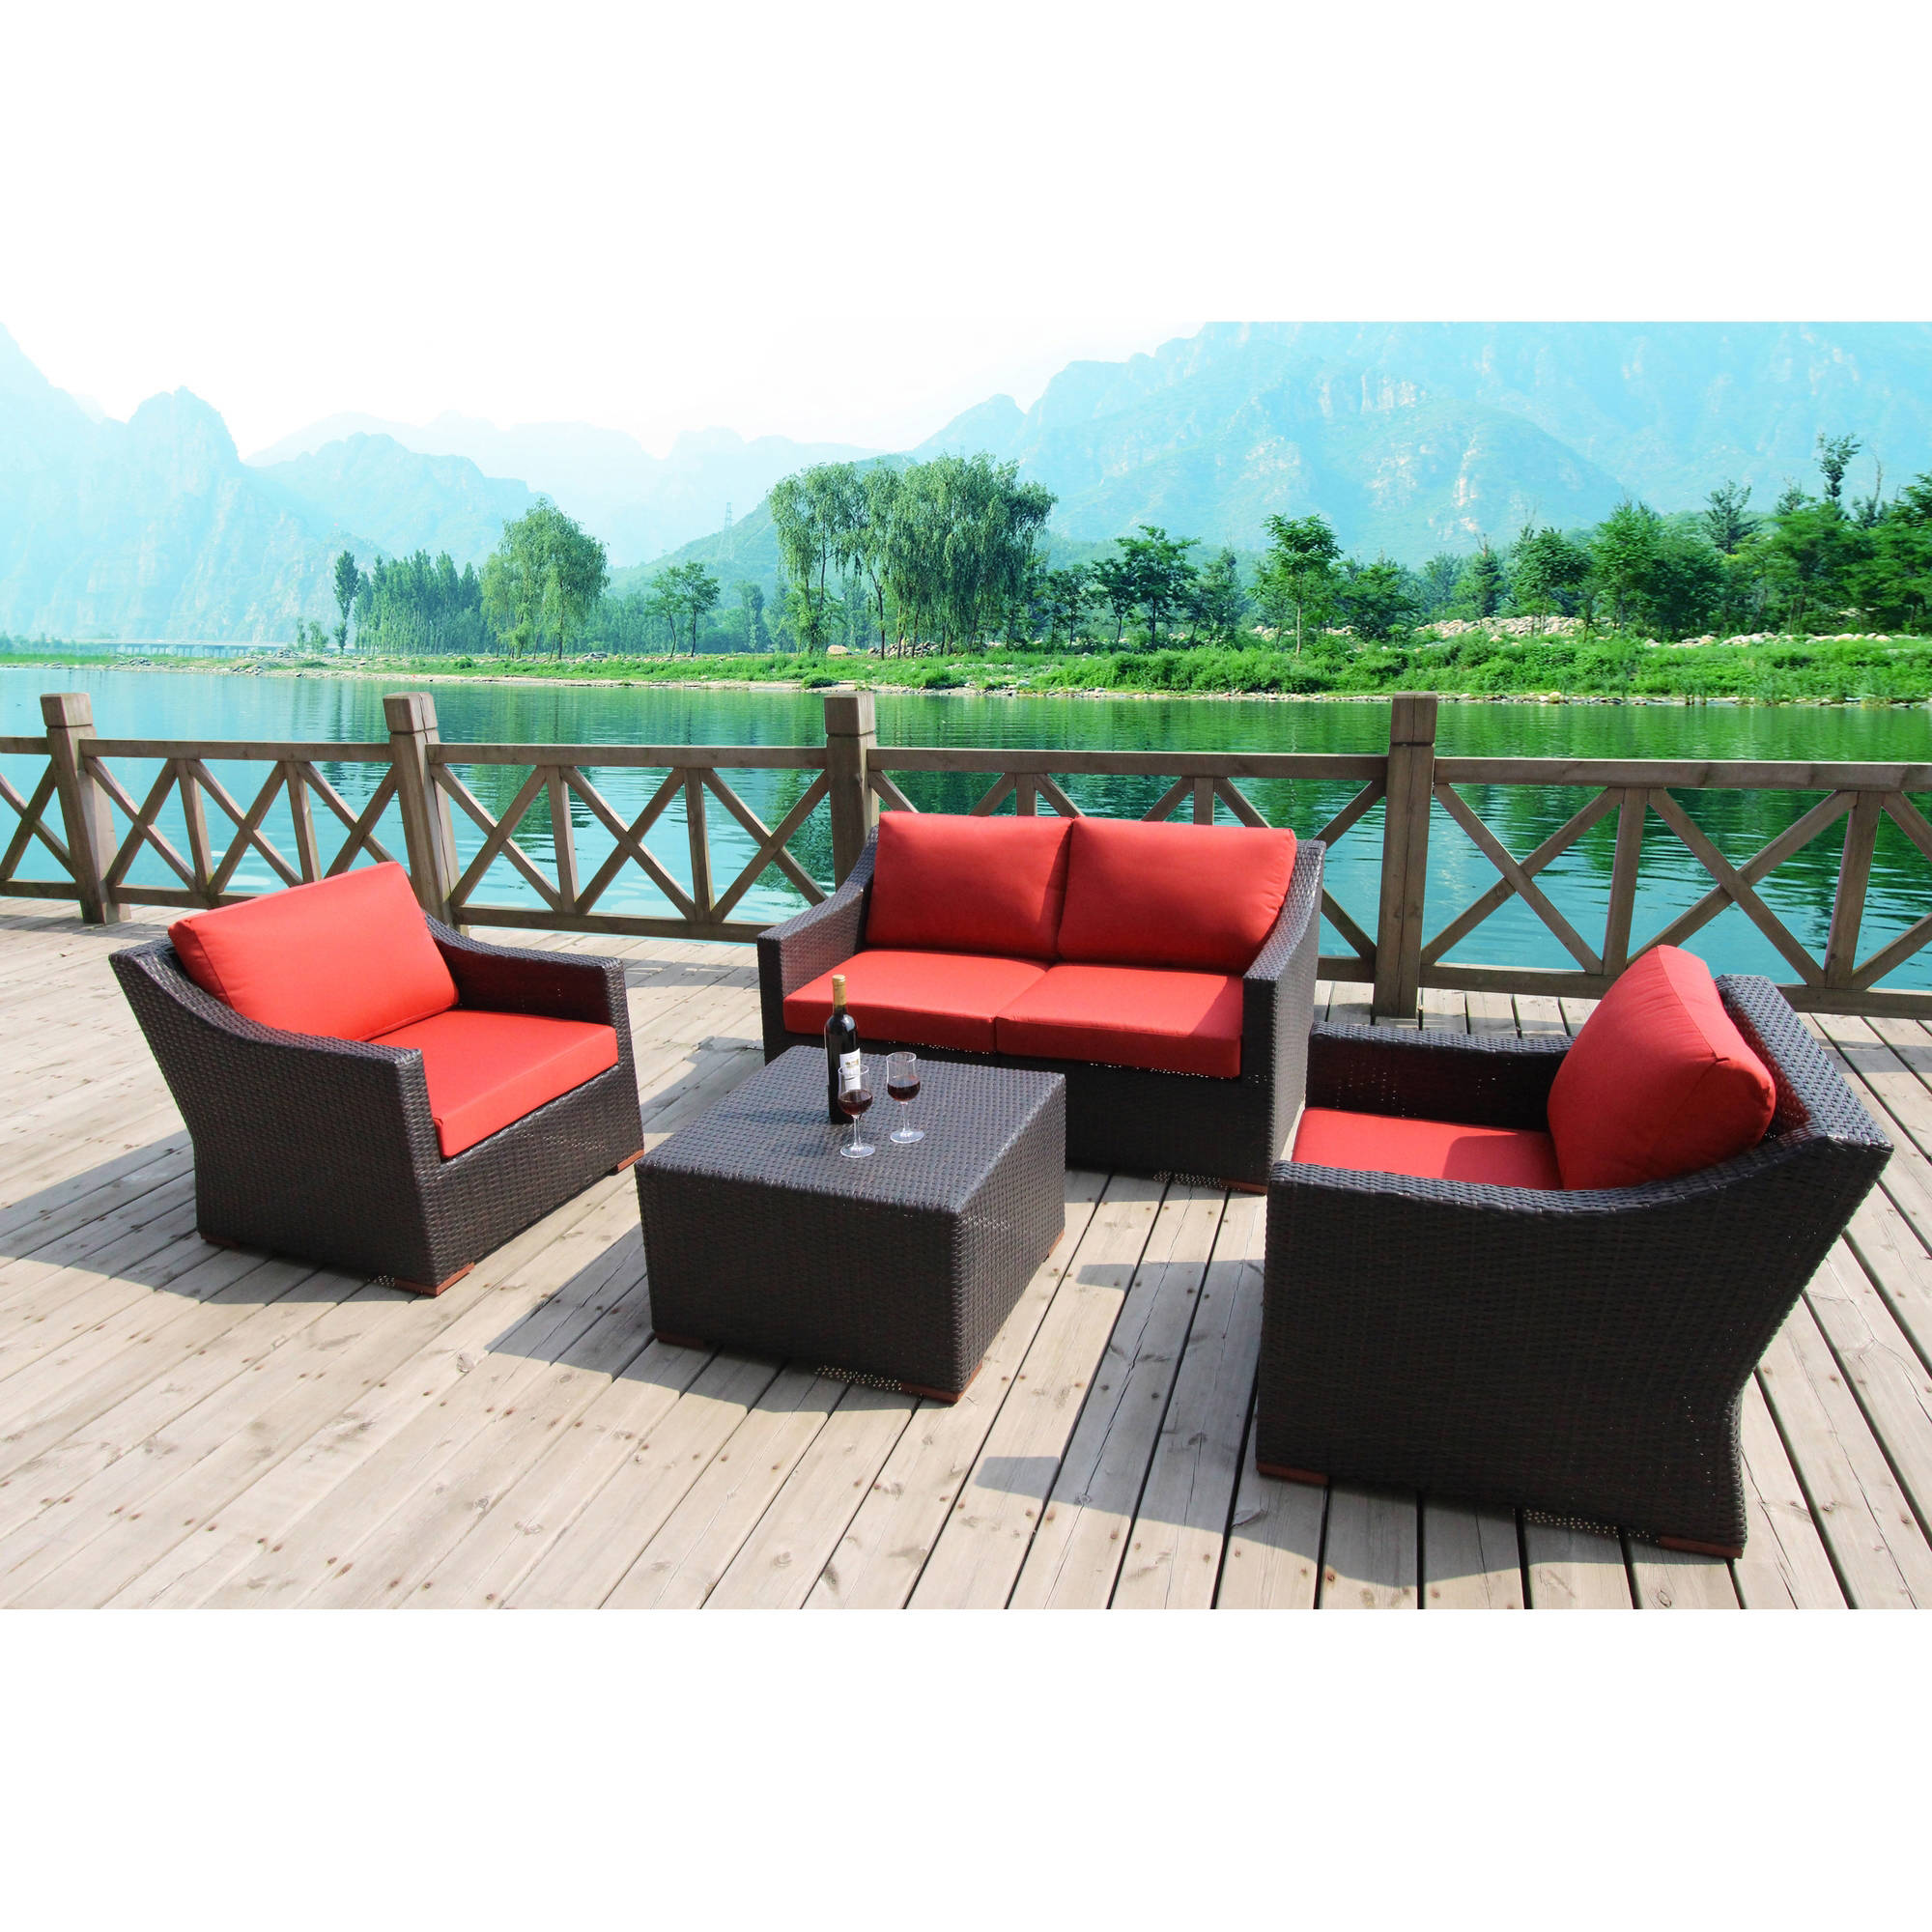 Bellini Home and Garden Cava Five-Piece Deep Seating Loveseat Set